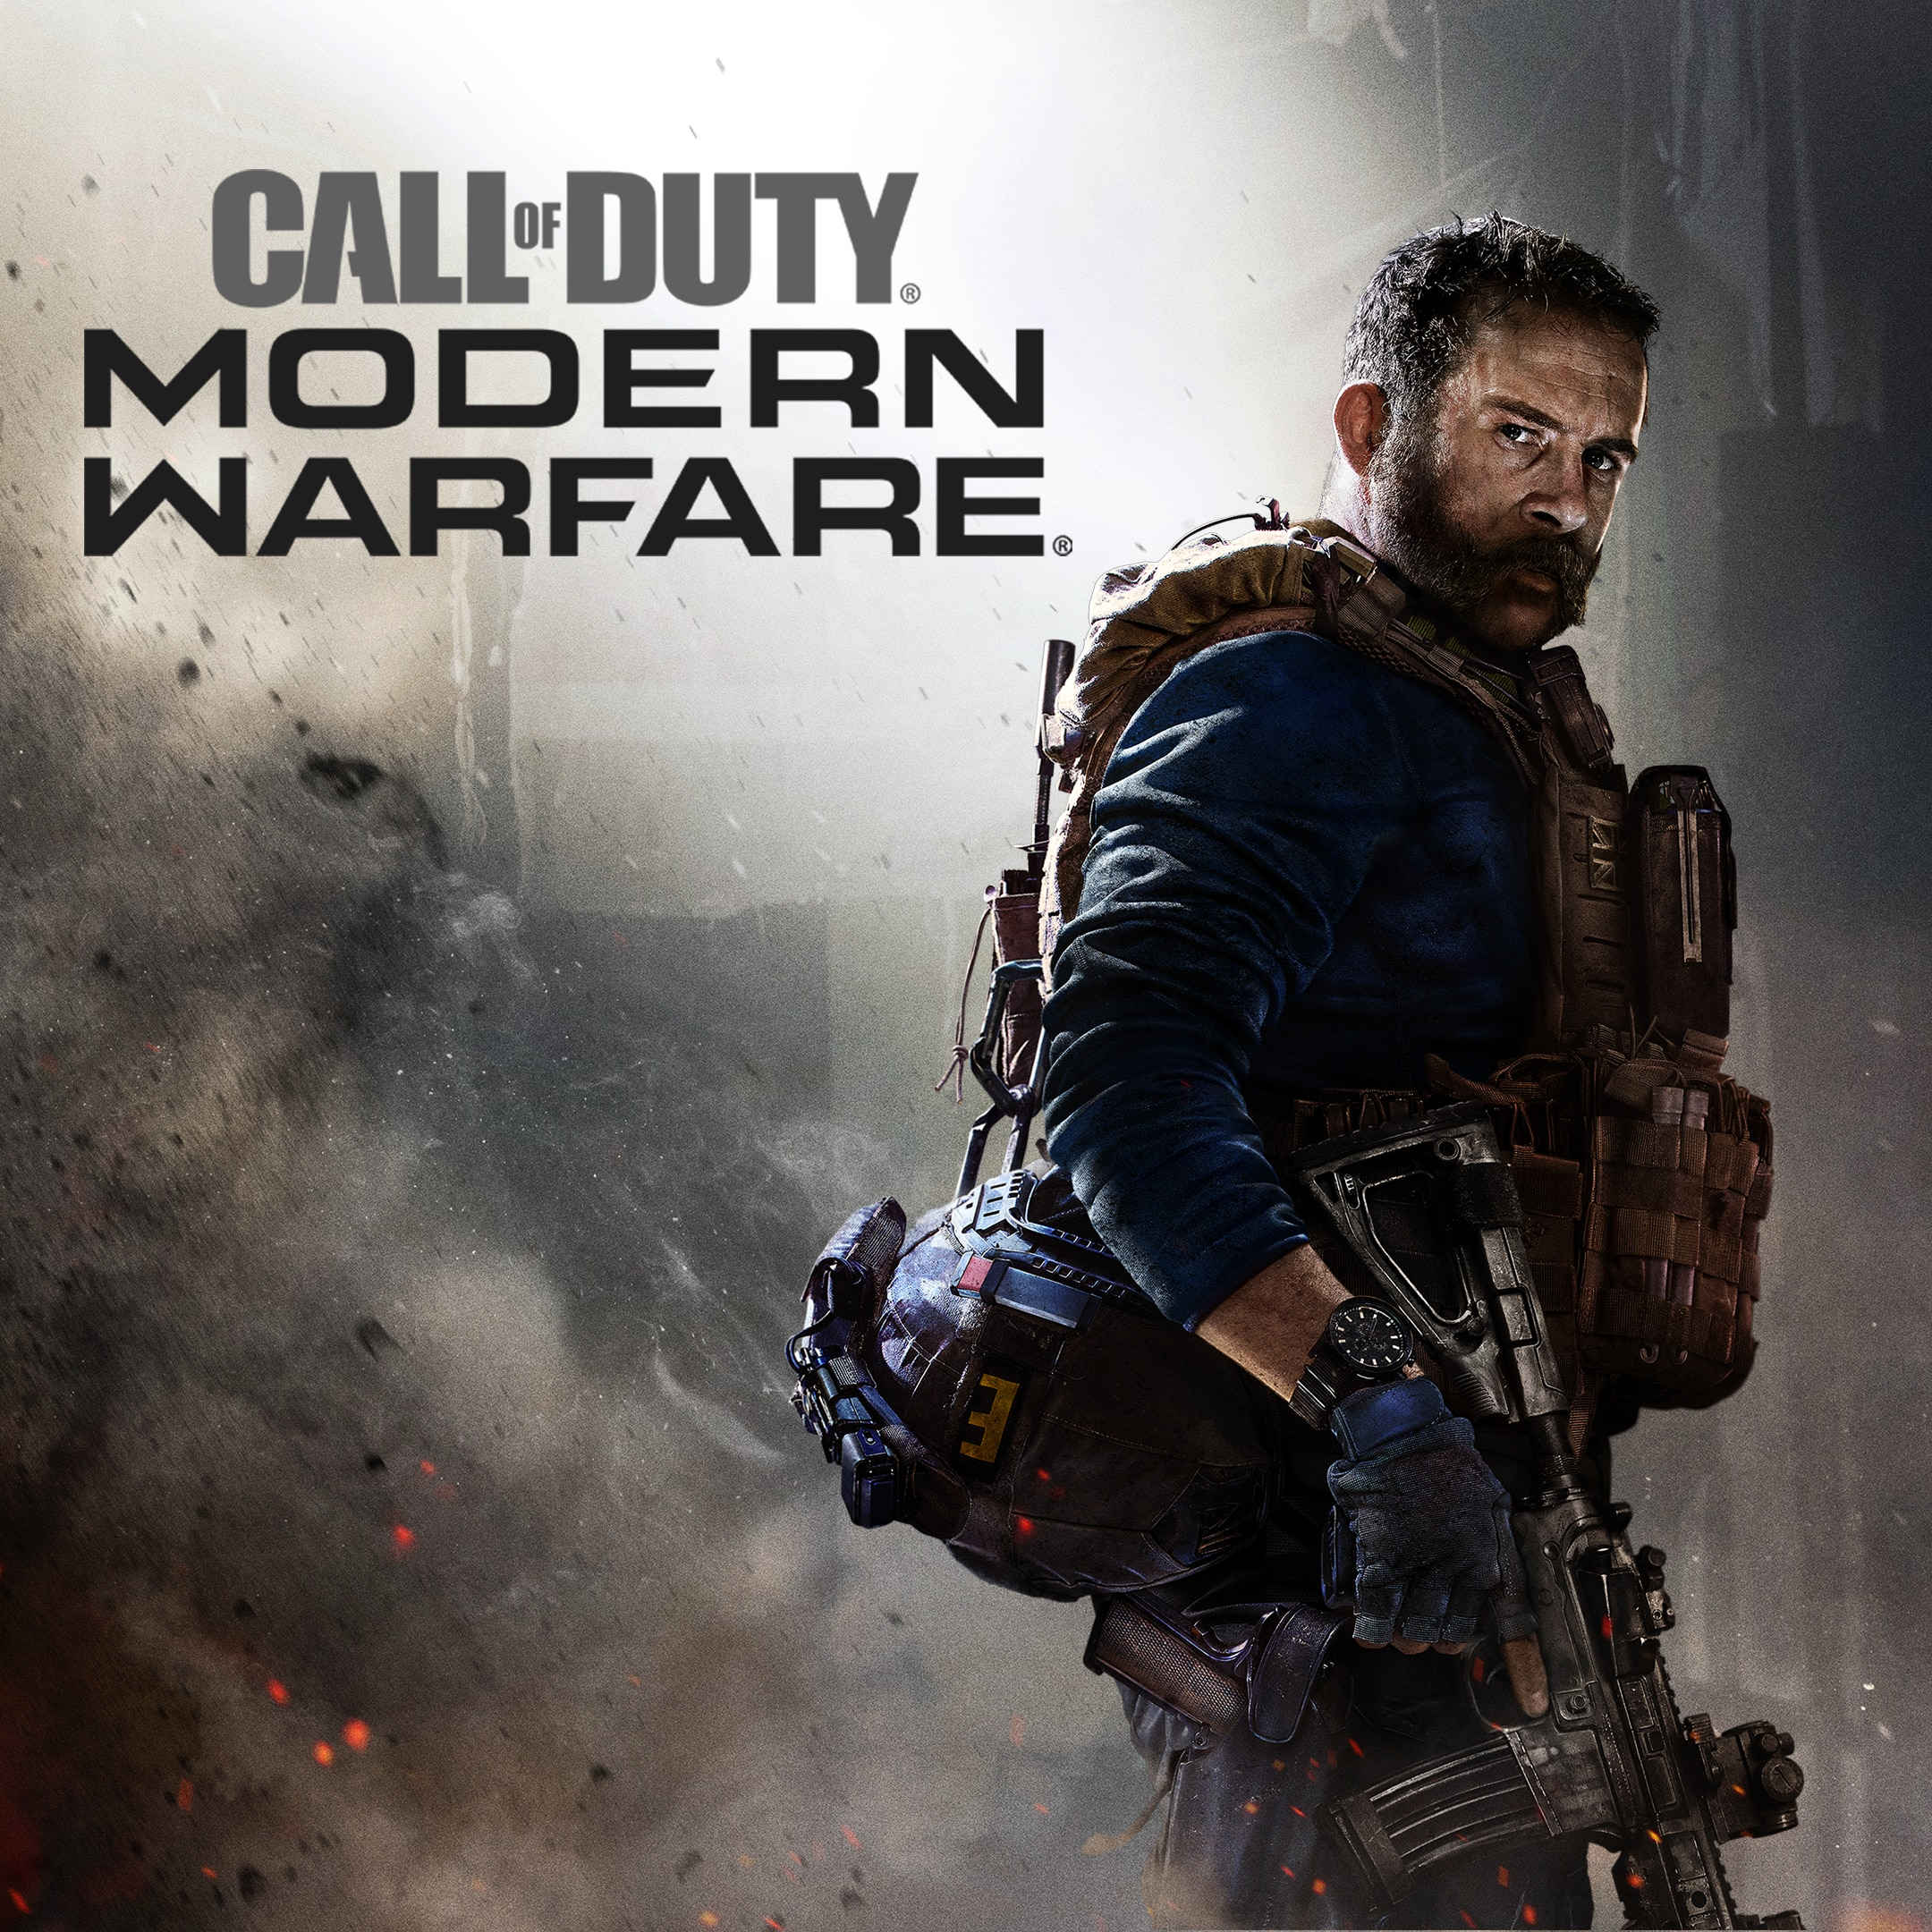 WM_GMA_Call of Duty Modern Warfare Add-ons